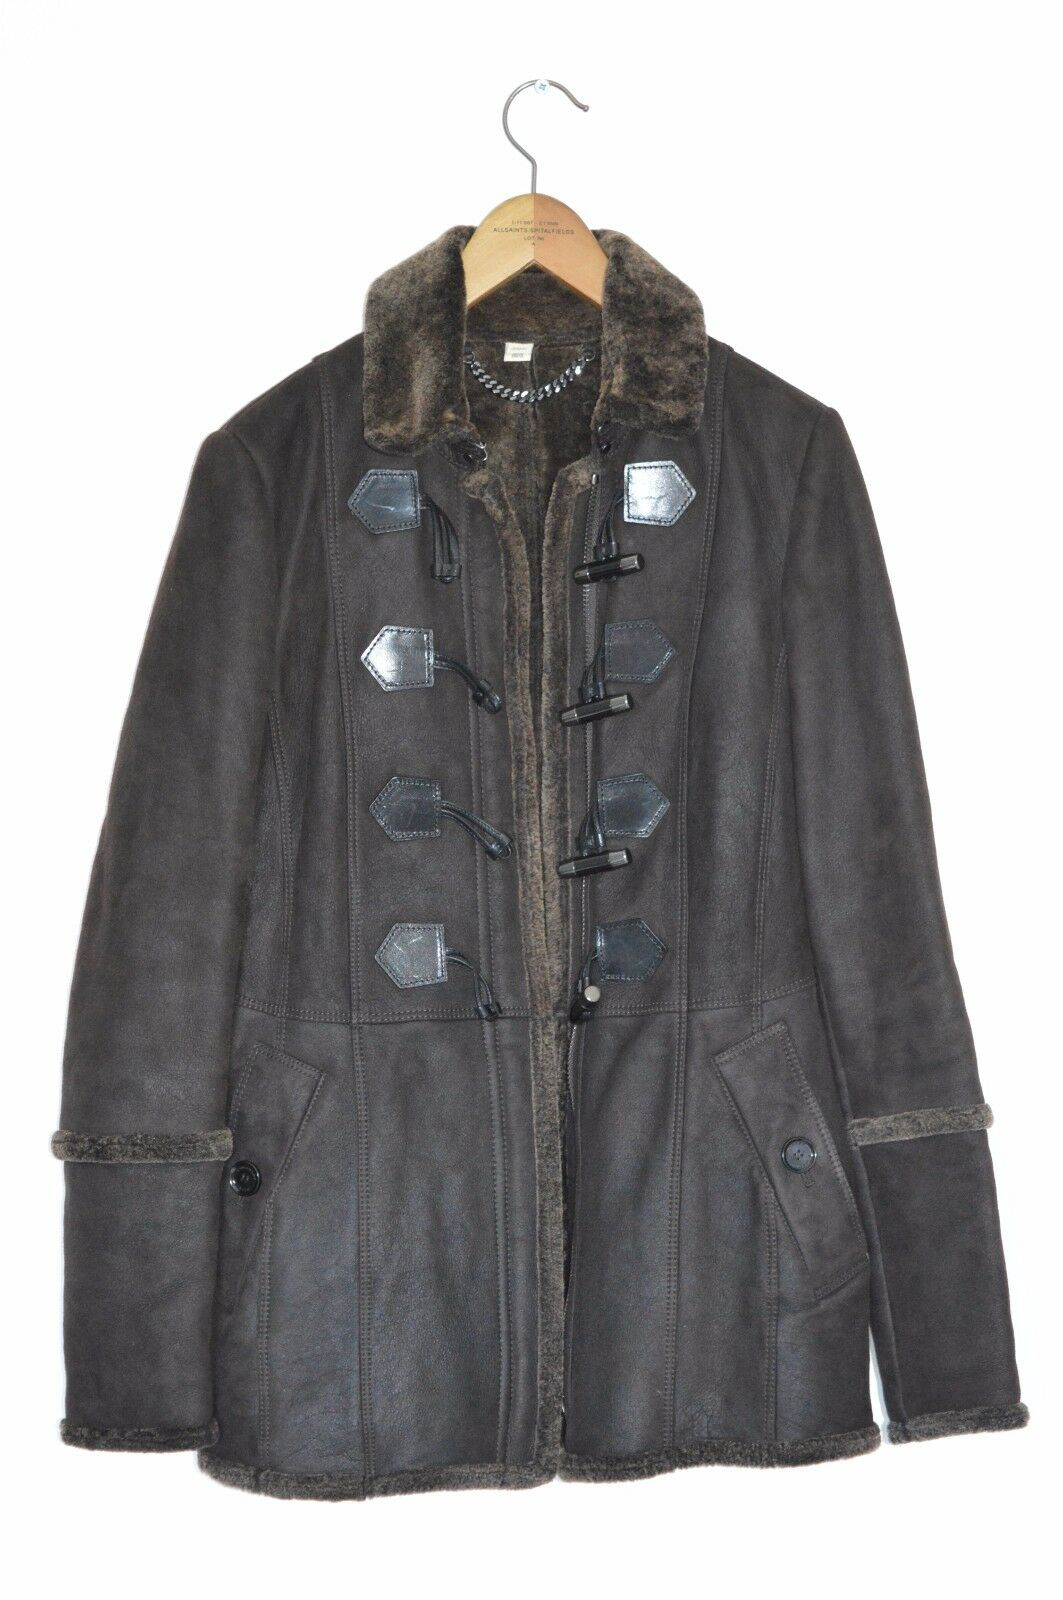 *STUNNING* Burberry Ladies Shearling sheepskin Duffle Coat Leather UK8 US6 EU36